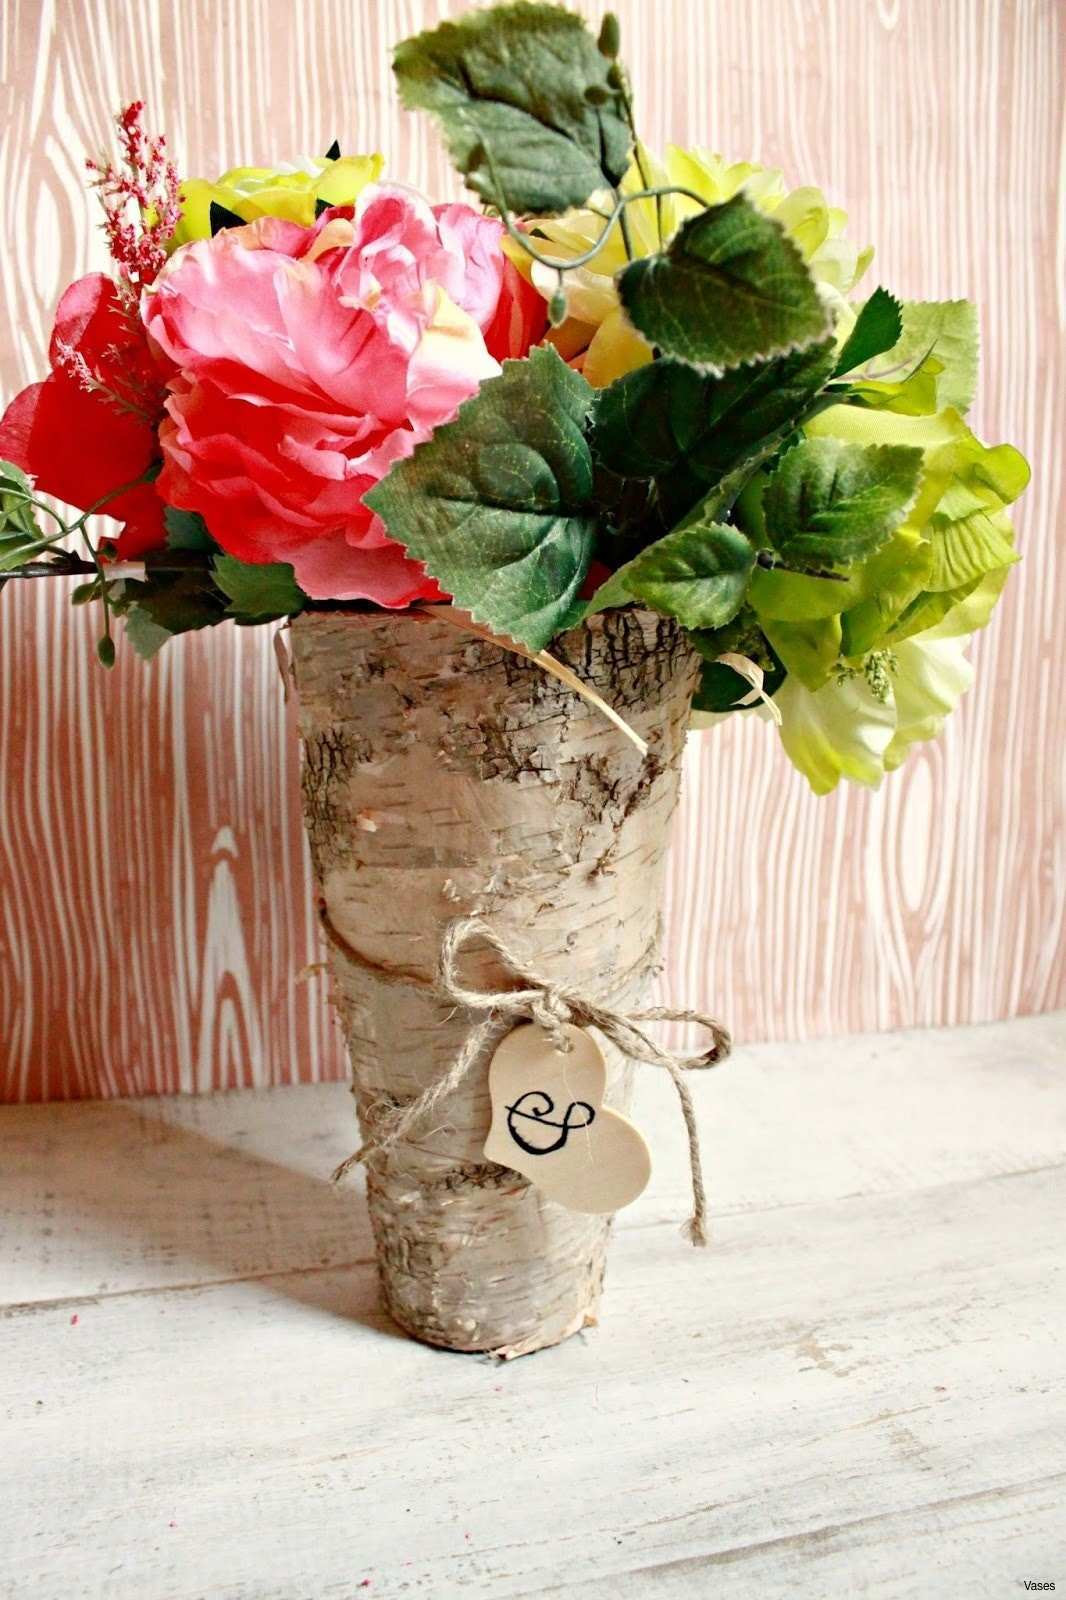 Tin Flower Vase Of Build A Planter Box for Vegetables Luxury Wooden Wedding Flowers H with Build A Planter Box for Vegetables Luxury Wooden Wedding Flowers H Vases Diy Wood Vase I